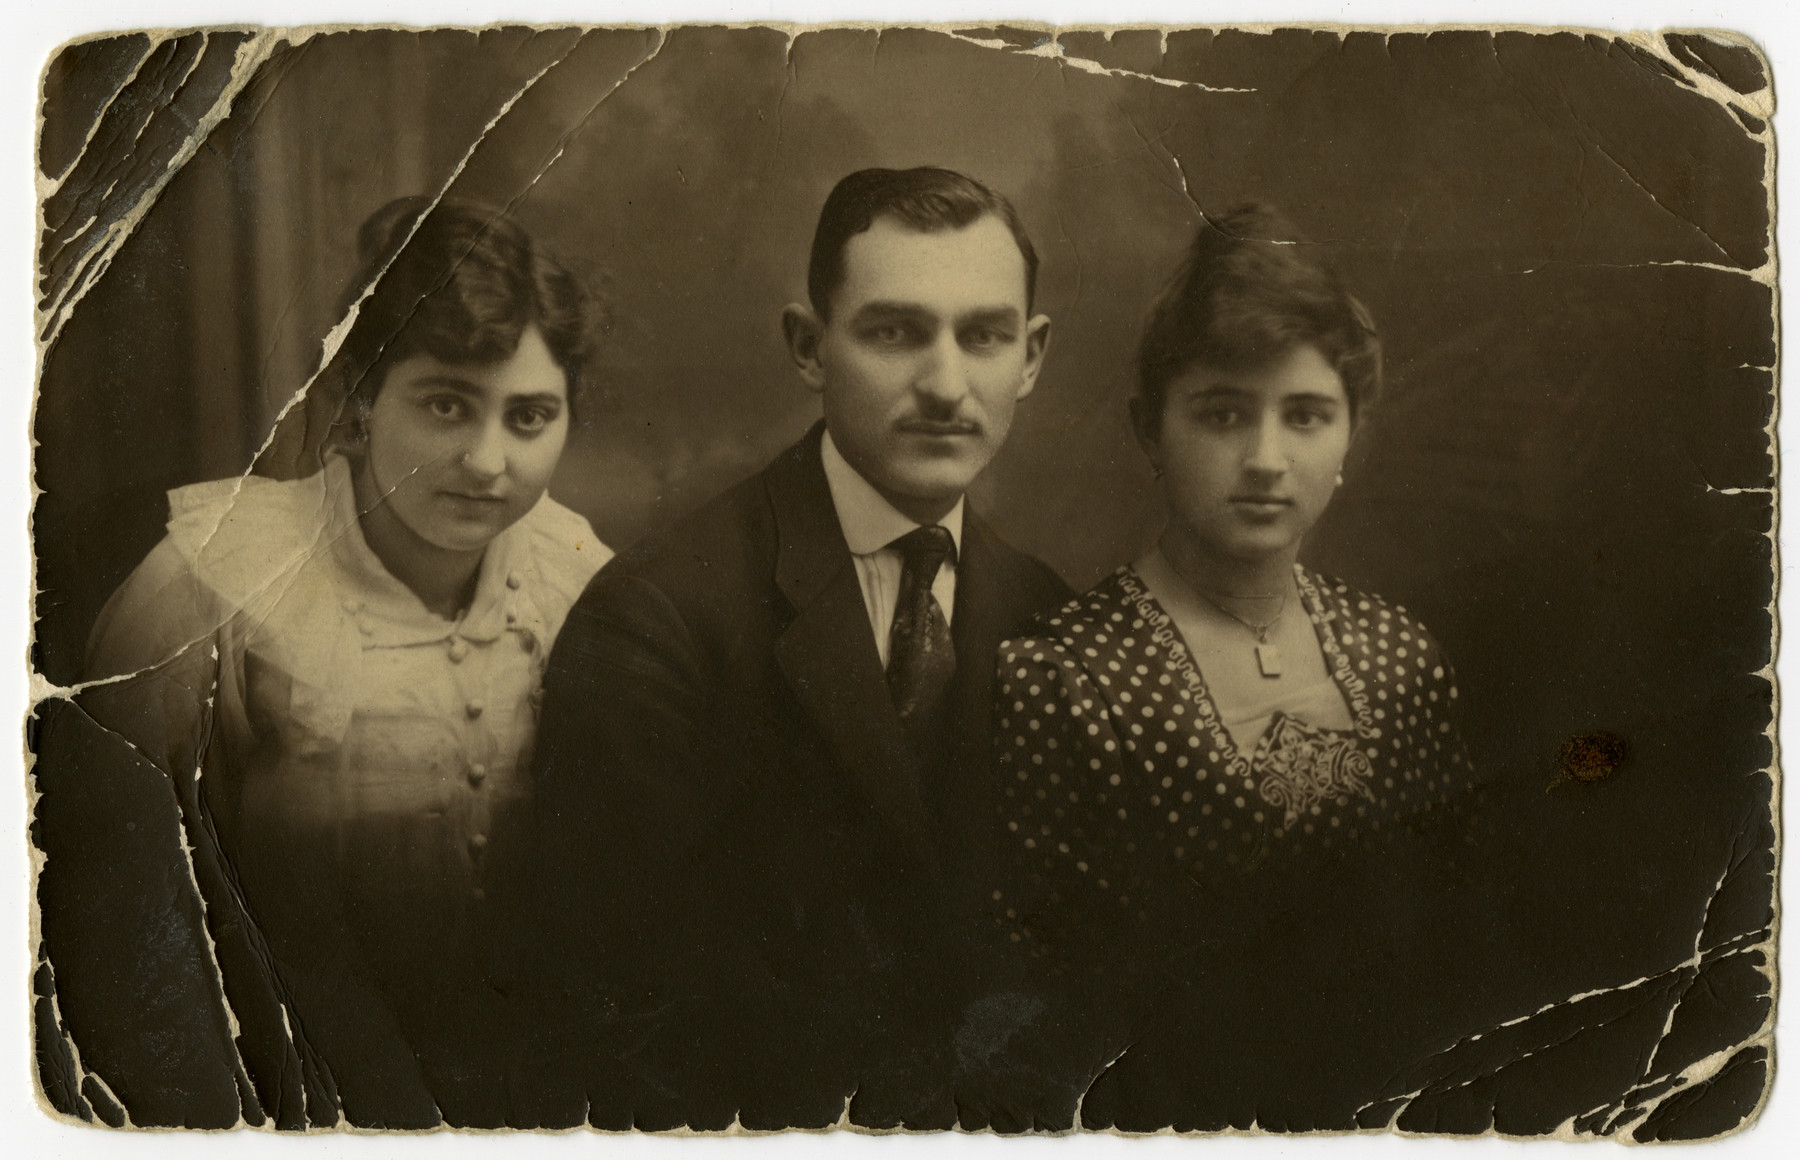 Three family members pose for a portrait.   From left to right: Mariska-Miriam Herskovits, Emanuel Herskovits, and Regina (last name unknown).